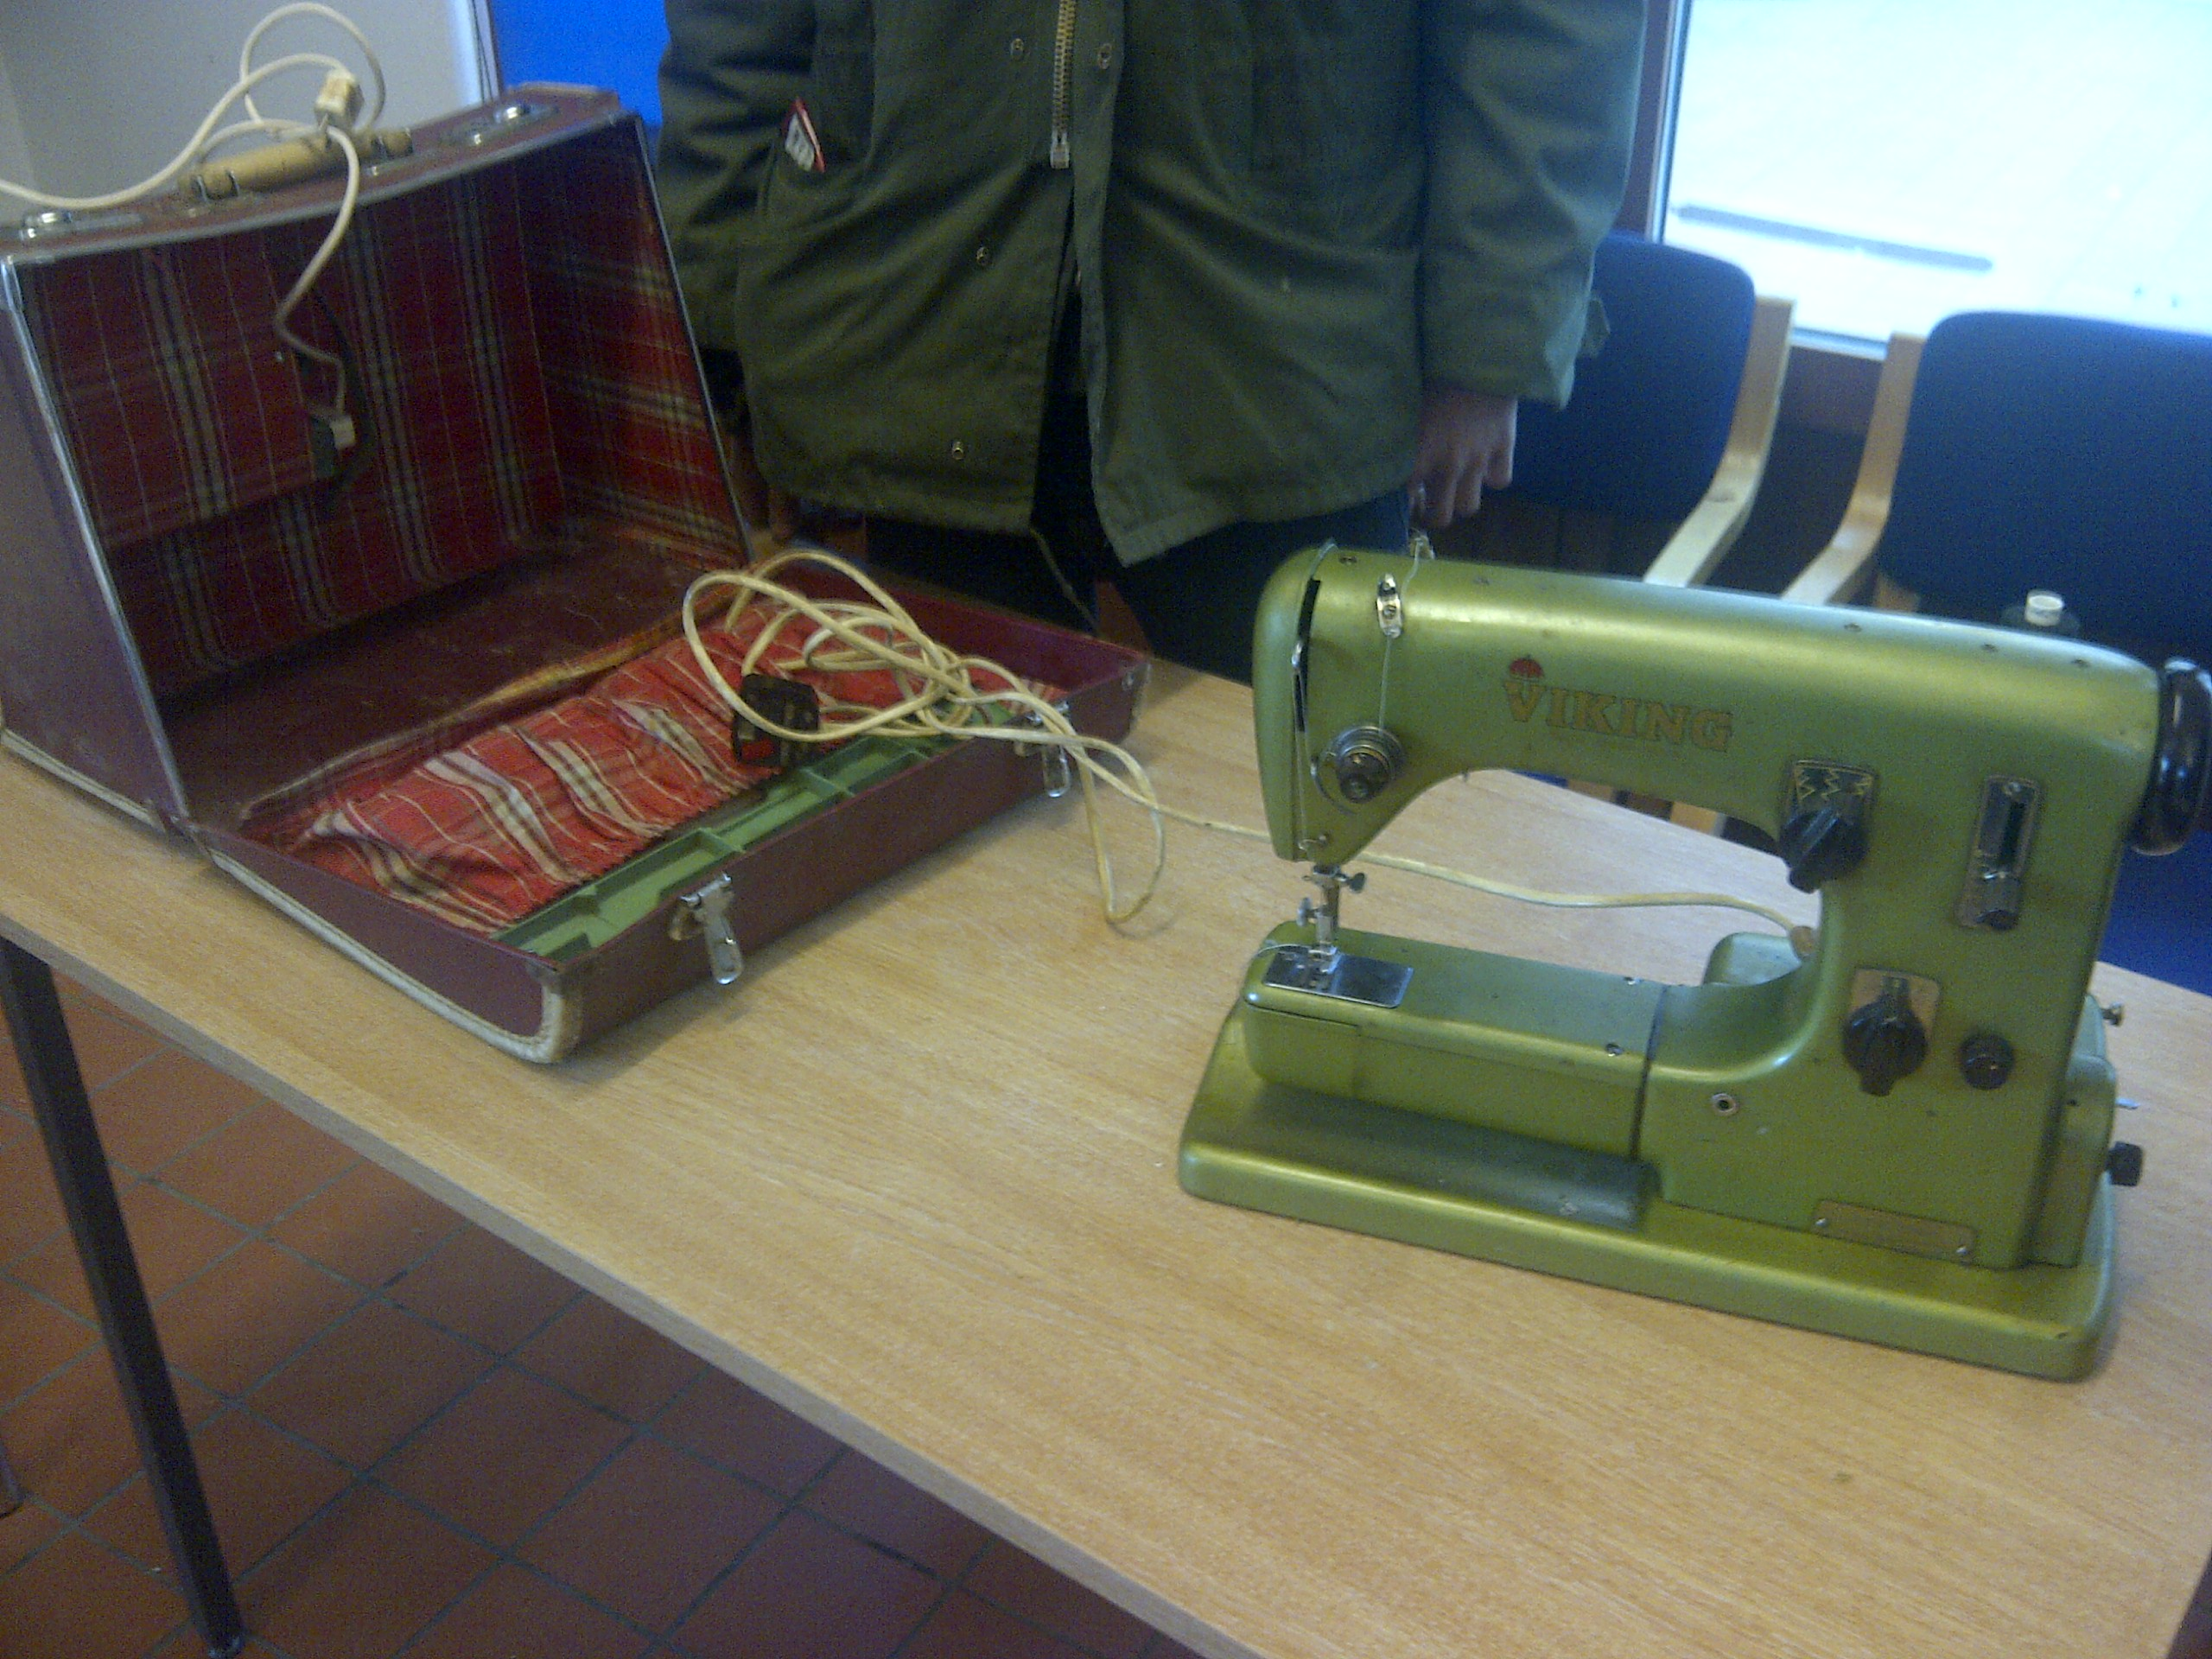 This classic sewing machine had beed stored and was seized up when it arrived. We helped the owner get it working and they even did a bit of sewing before they left!